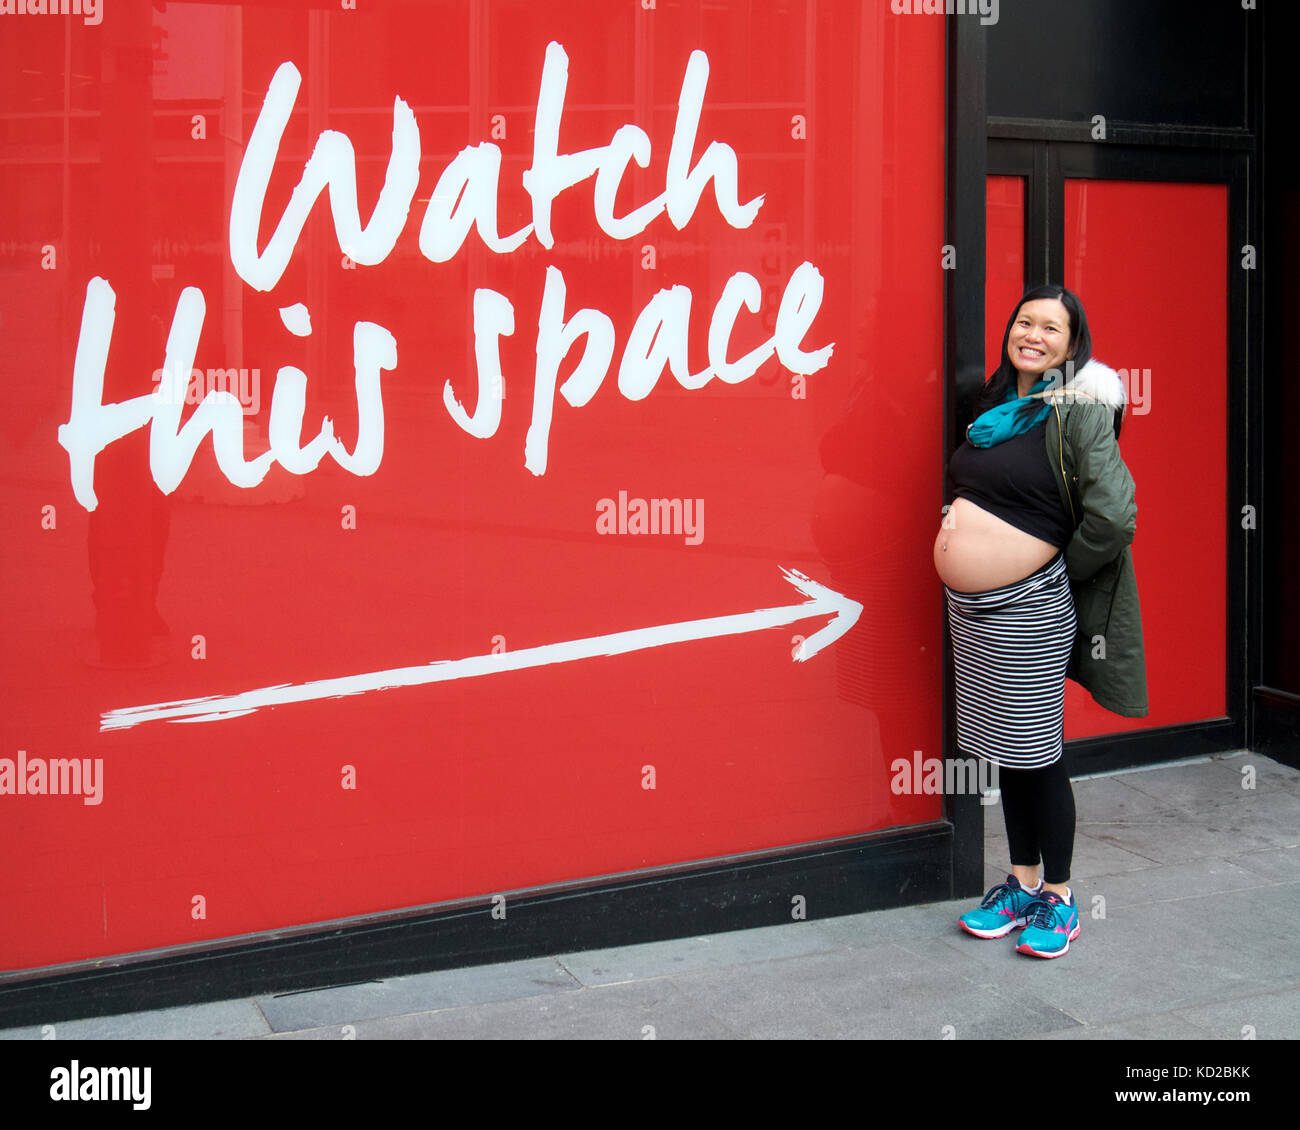 Pregnant Chinese woman standing next to  'Watch This Space' sign - Stock Image